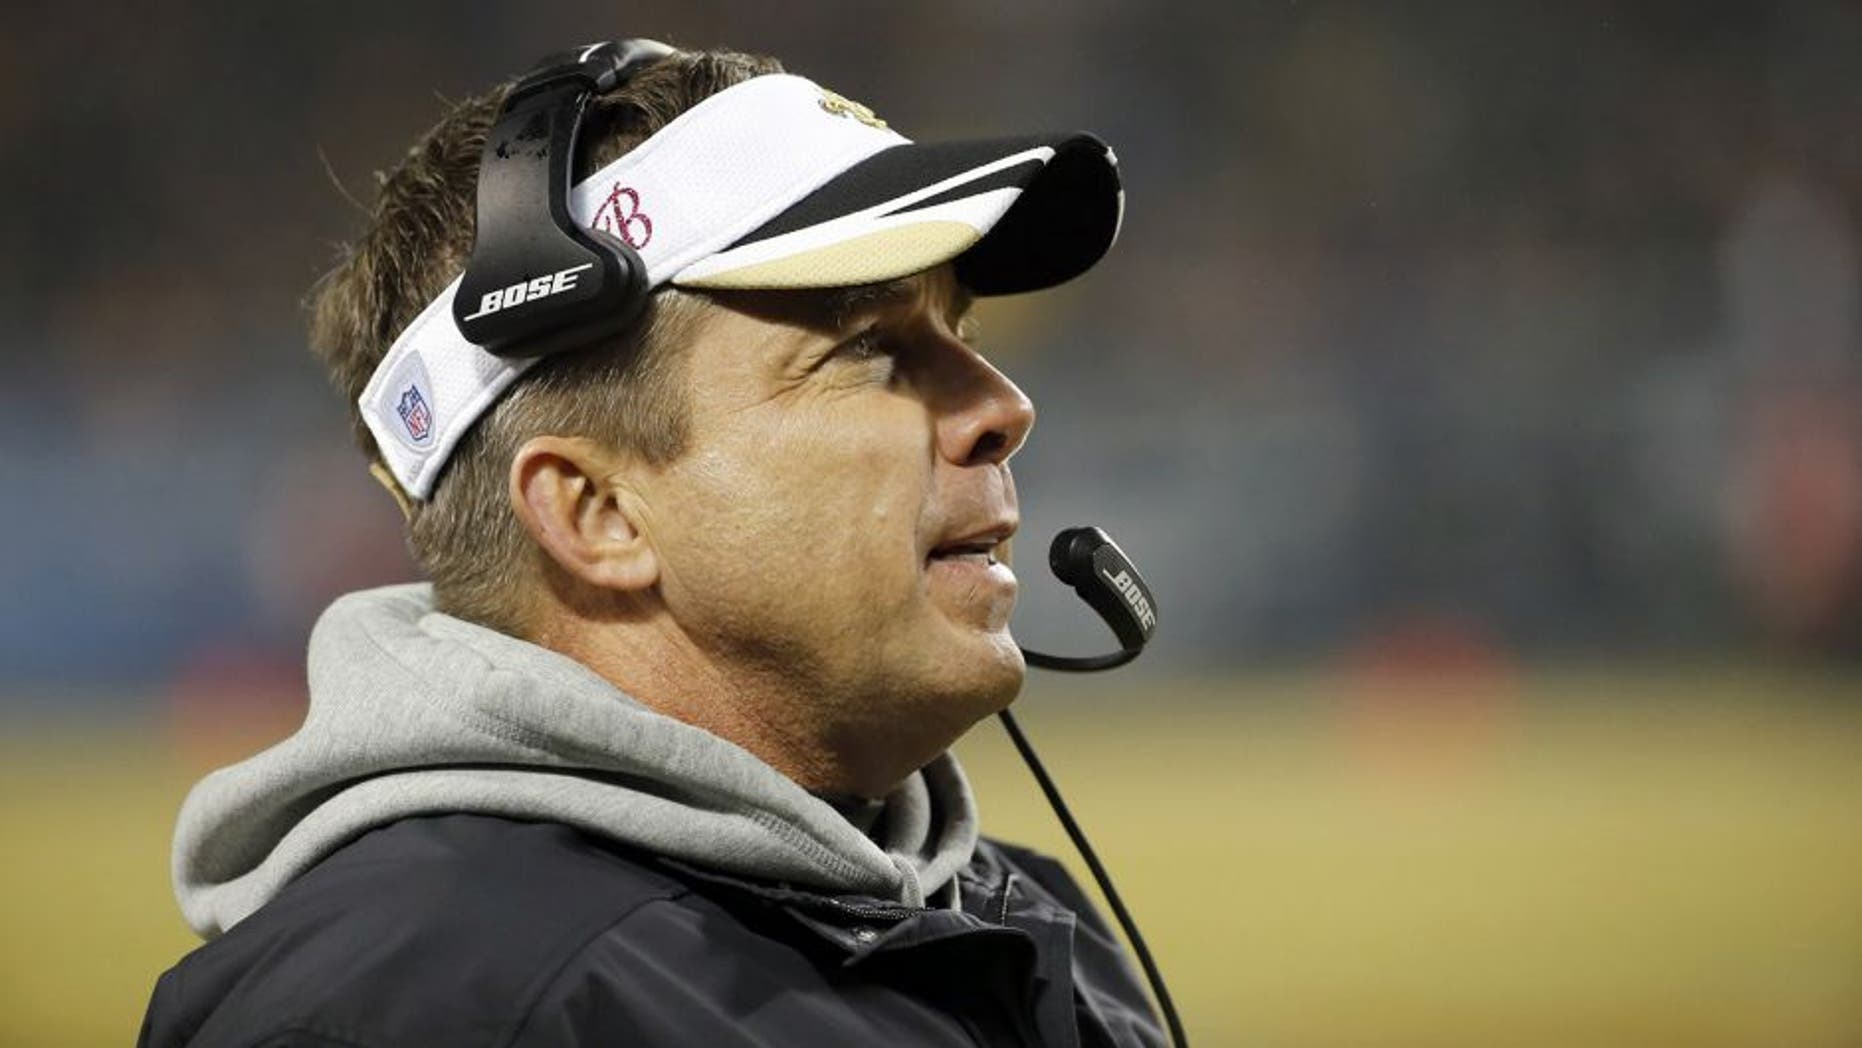 New Orleans Saints head coach Sean Payton watches from the sideline during the first half of an NFL football game against the Chicago Bears Monday, Dec. 15, 2014, in Chicago. (AP Photo/Charles Rex Arbogast)